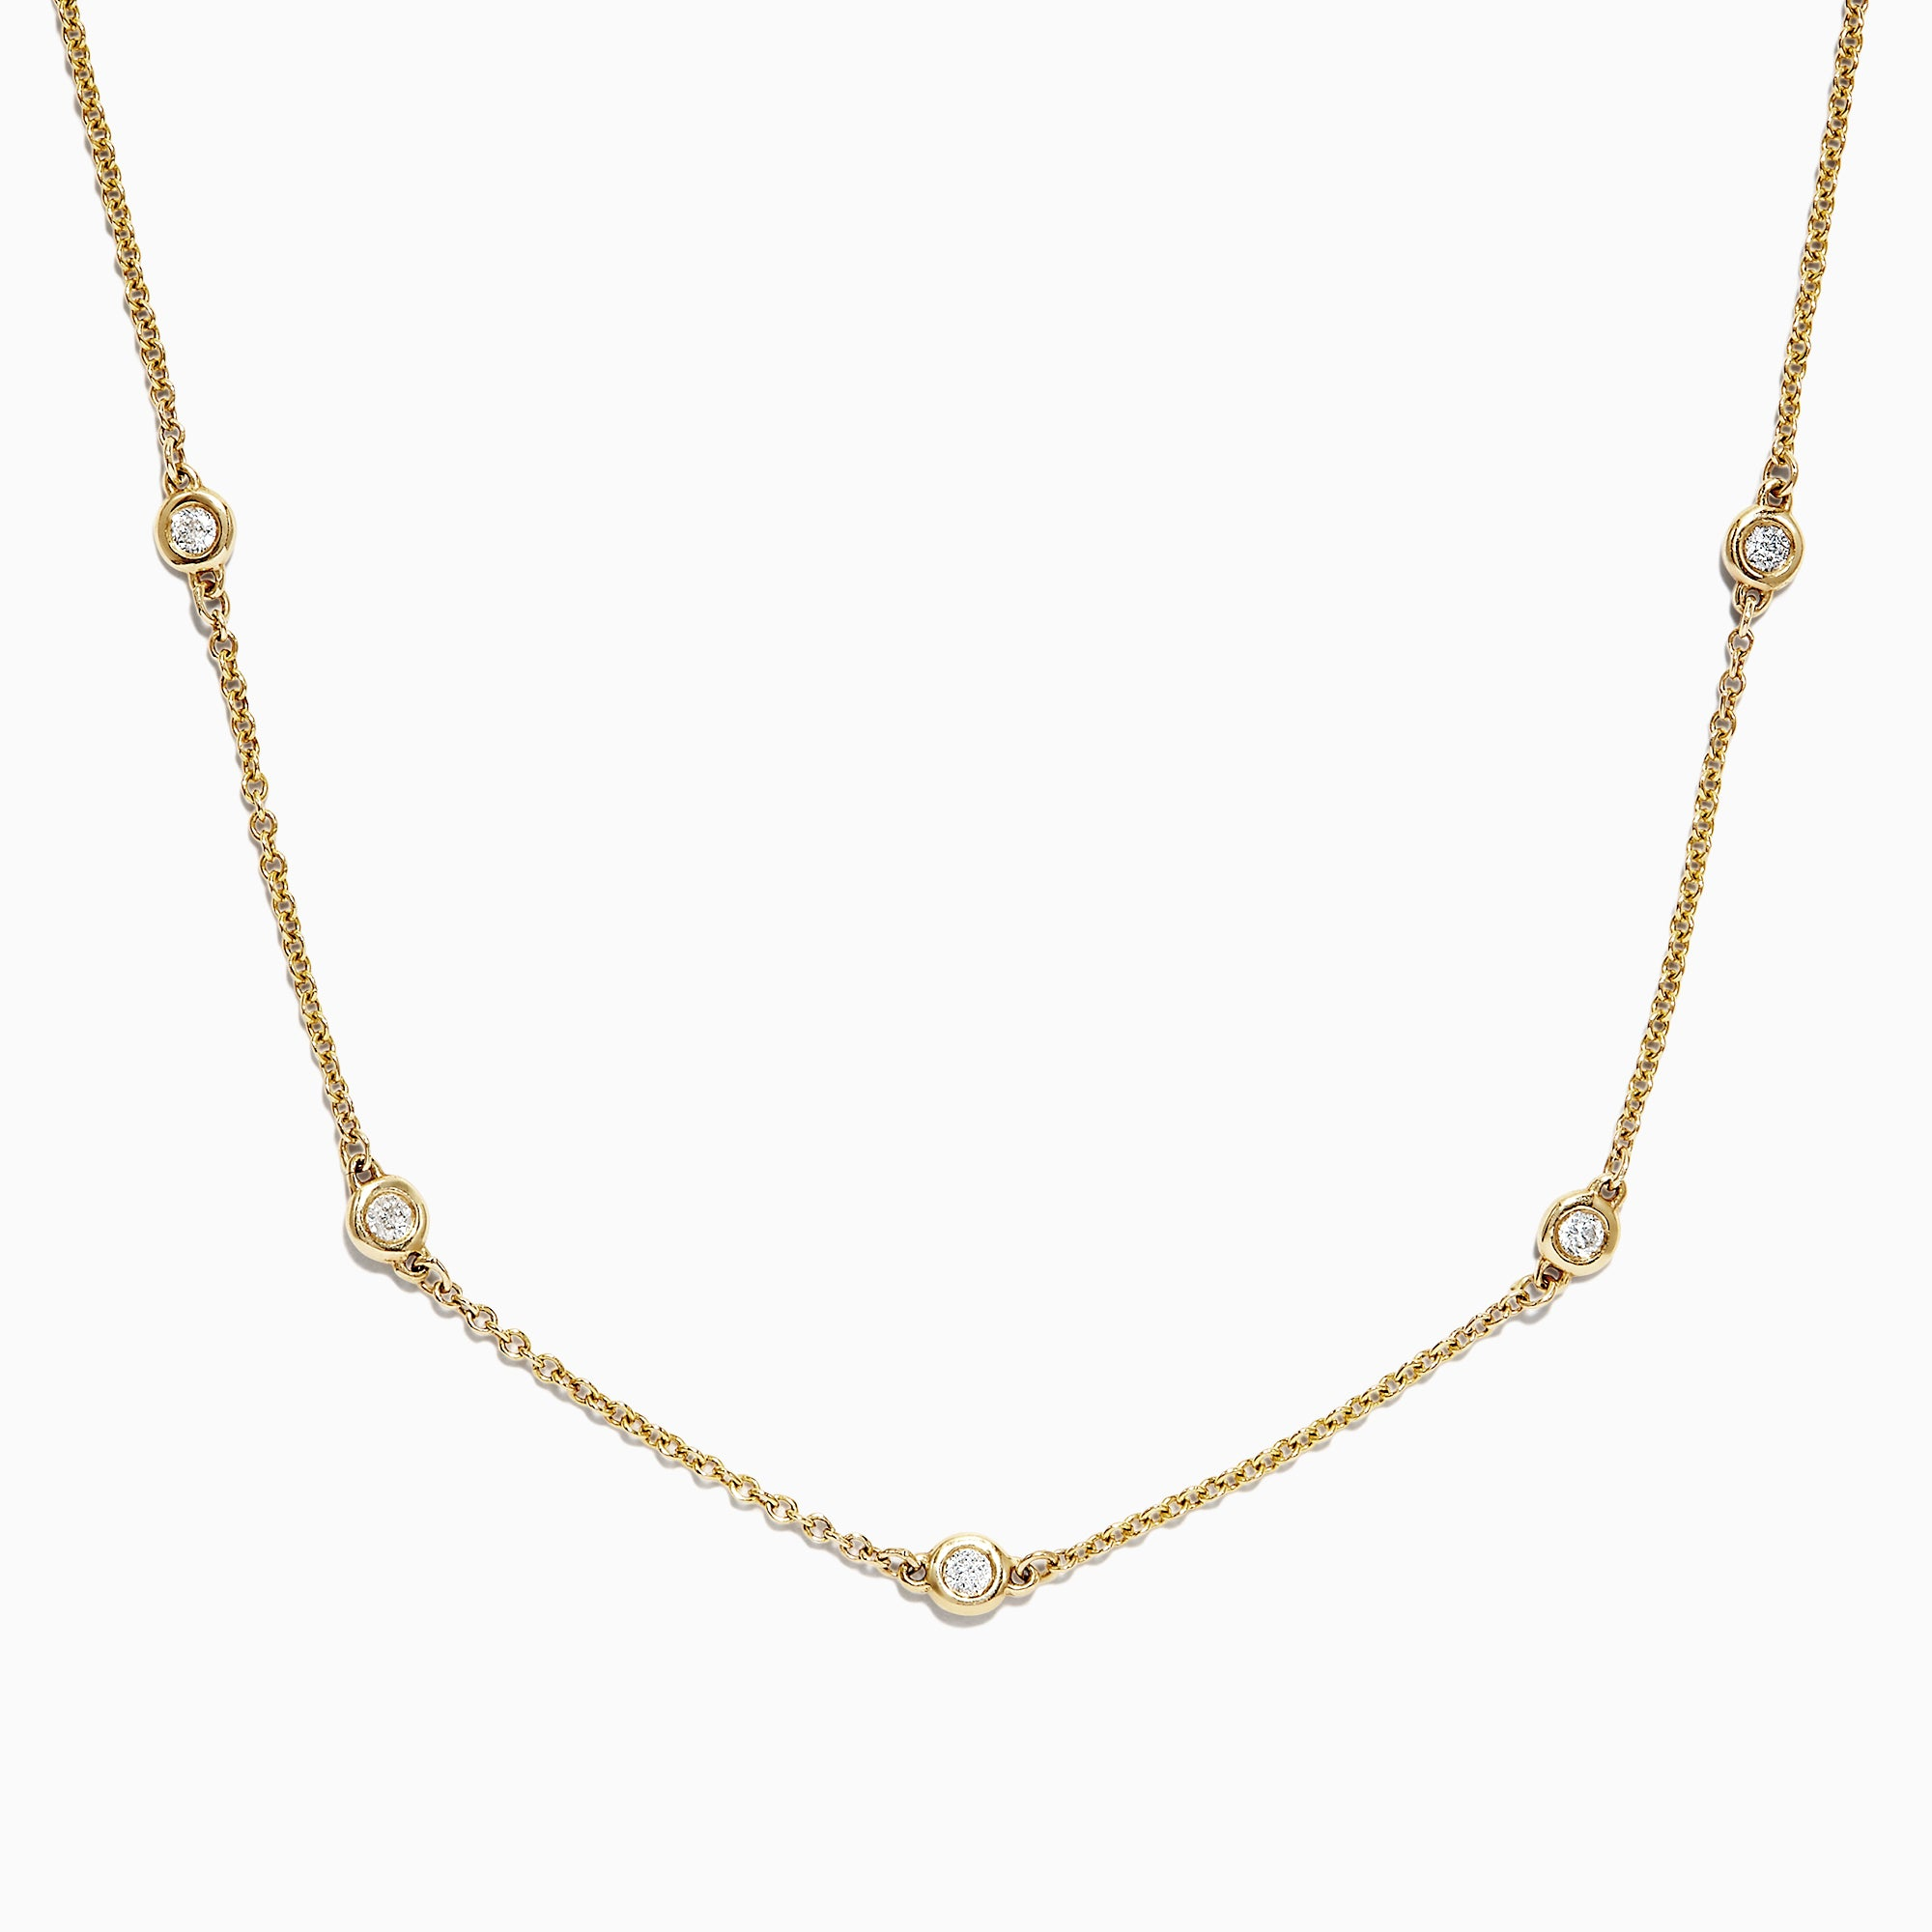 "Effy D'Oro 14K Yellow Gold 18"" Diamond Station Necklace, 0.21 TCW"